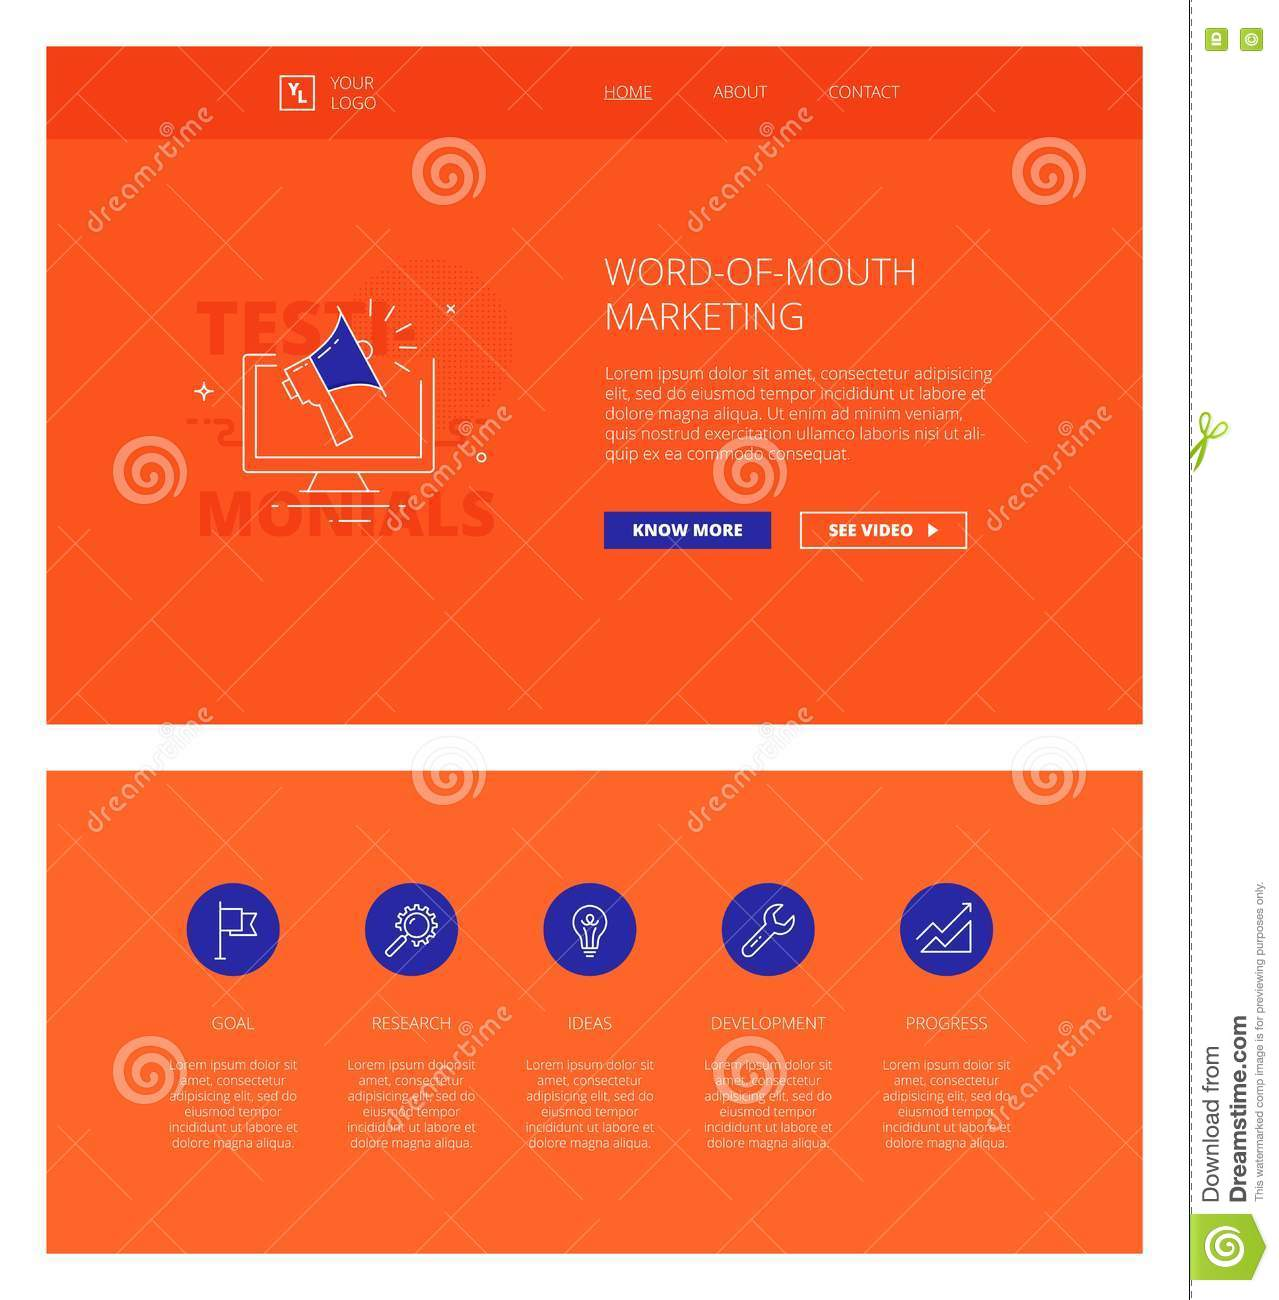 Wordofmouth Marketing Design Template For Websites And Stock - Word web page template